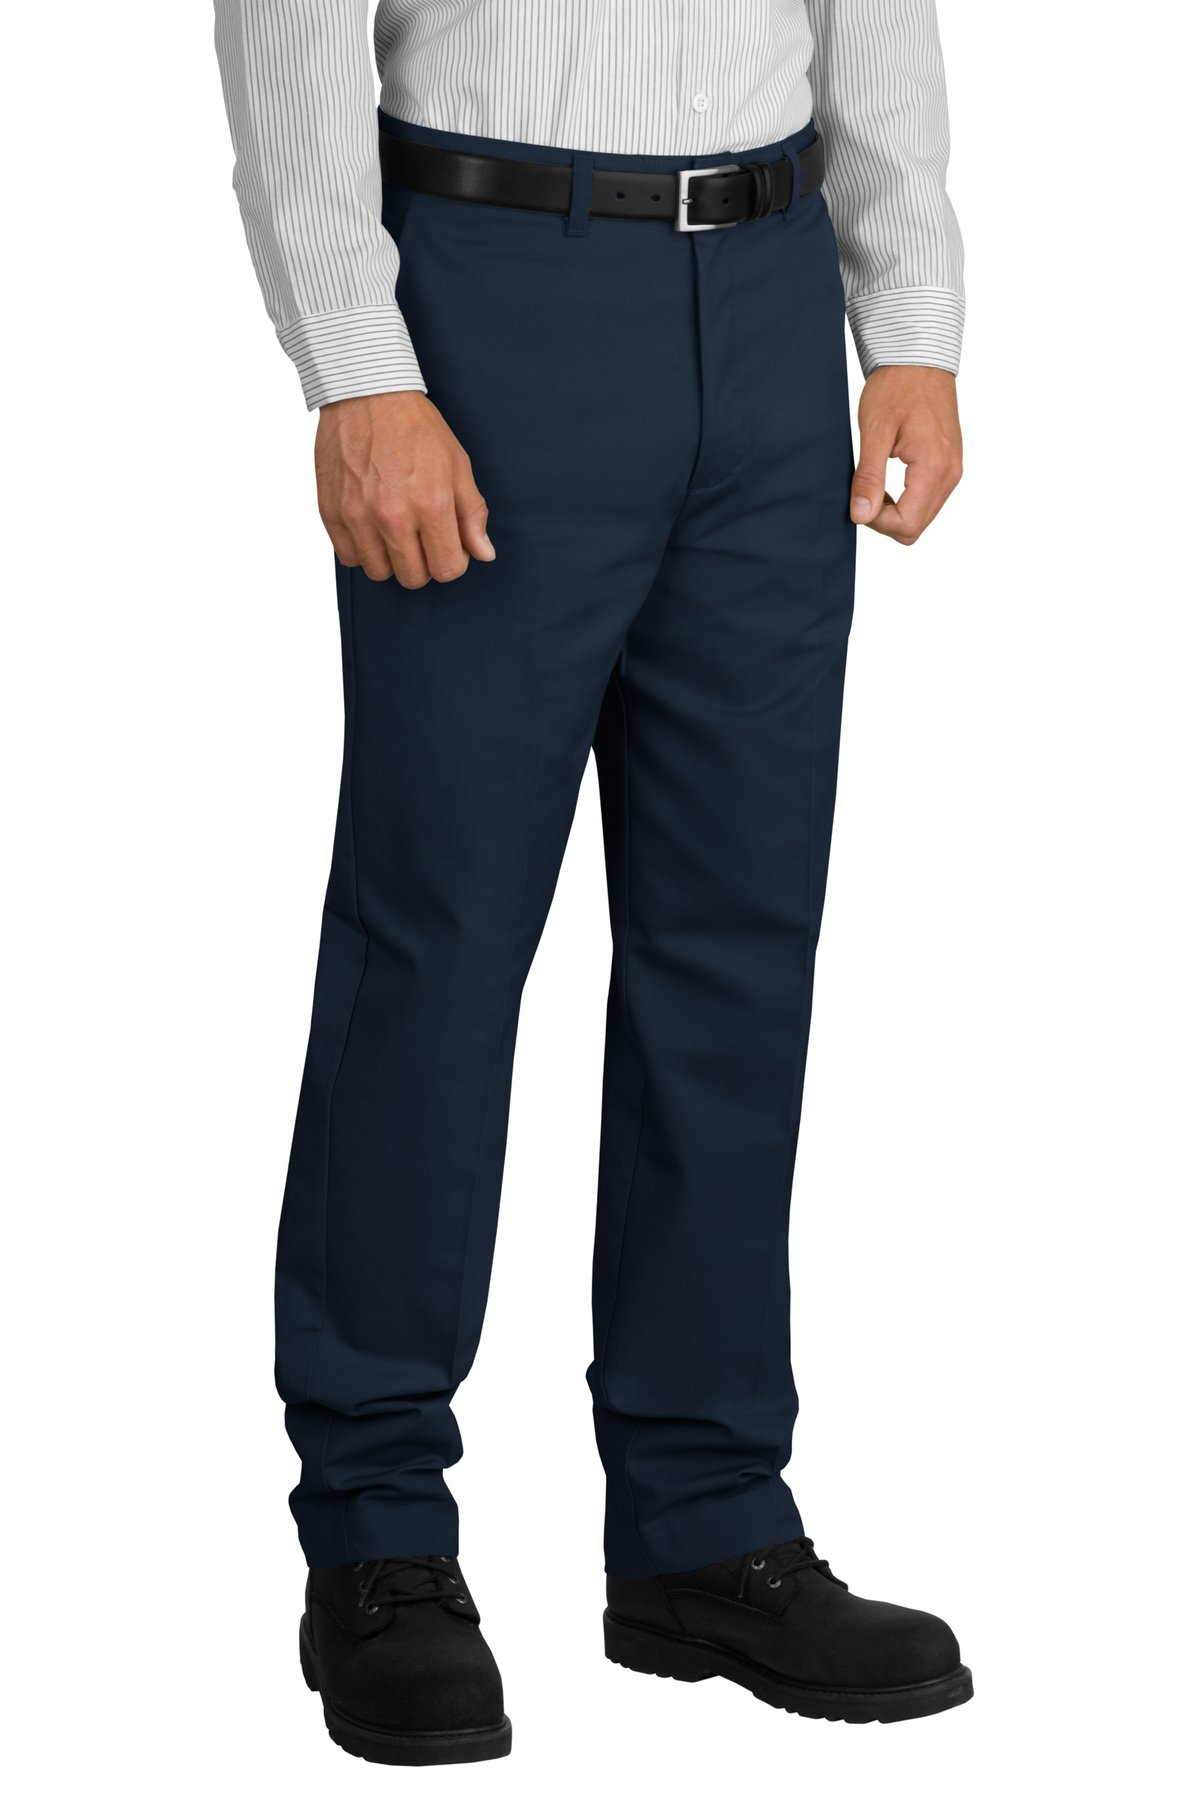 Red Kap ®  - Industrial Work Pant.  PT20 - Navy